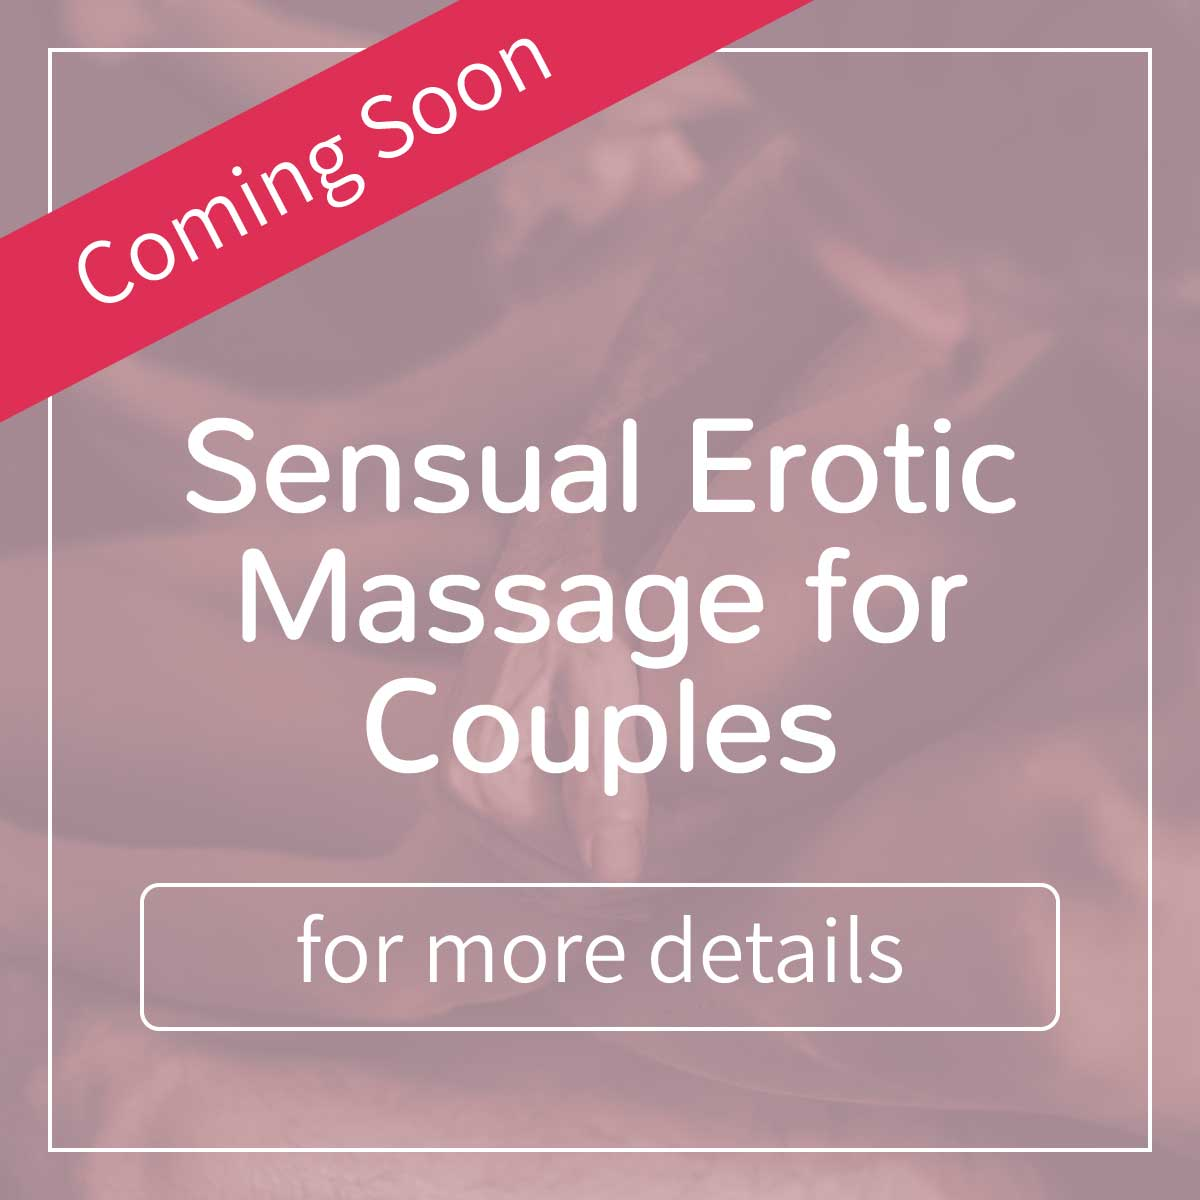 Sensual Erotic Massage for Couples